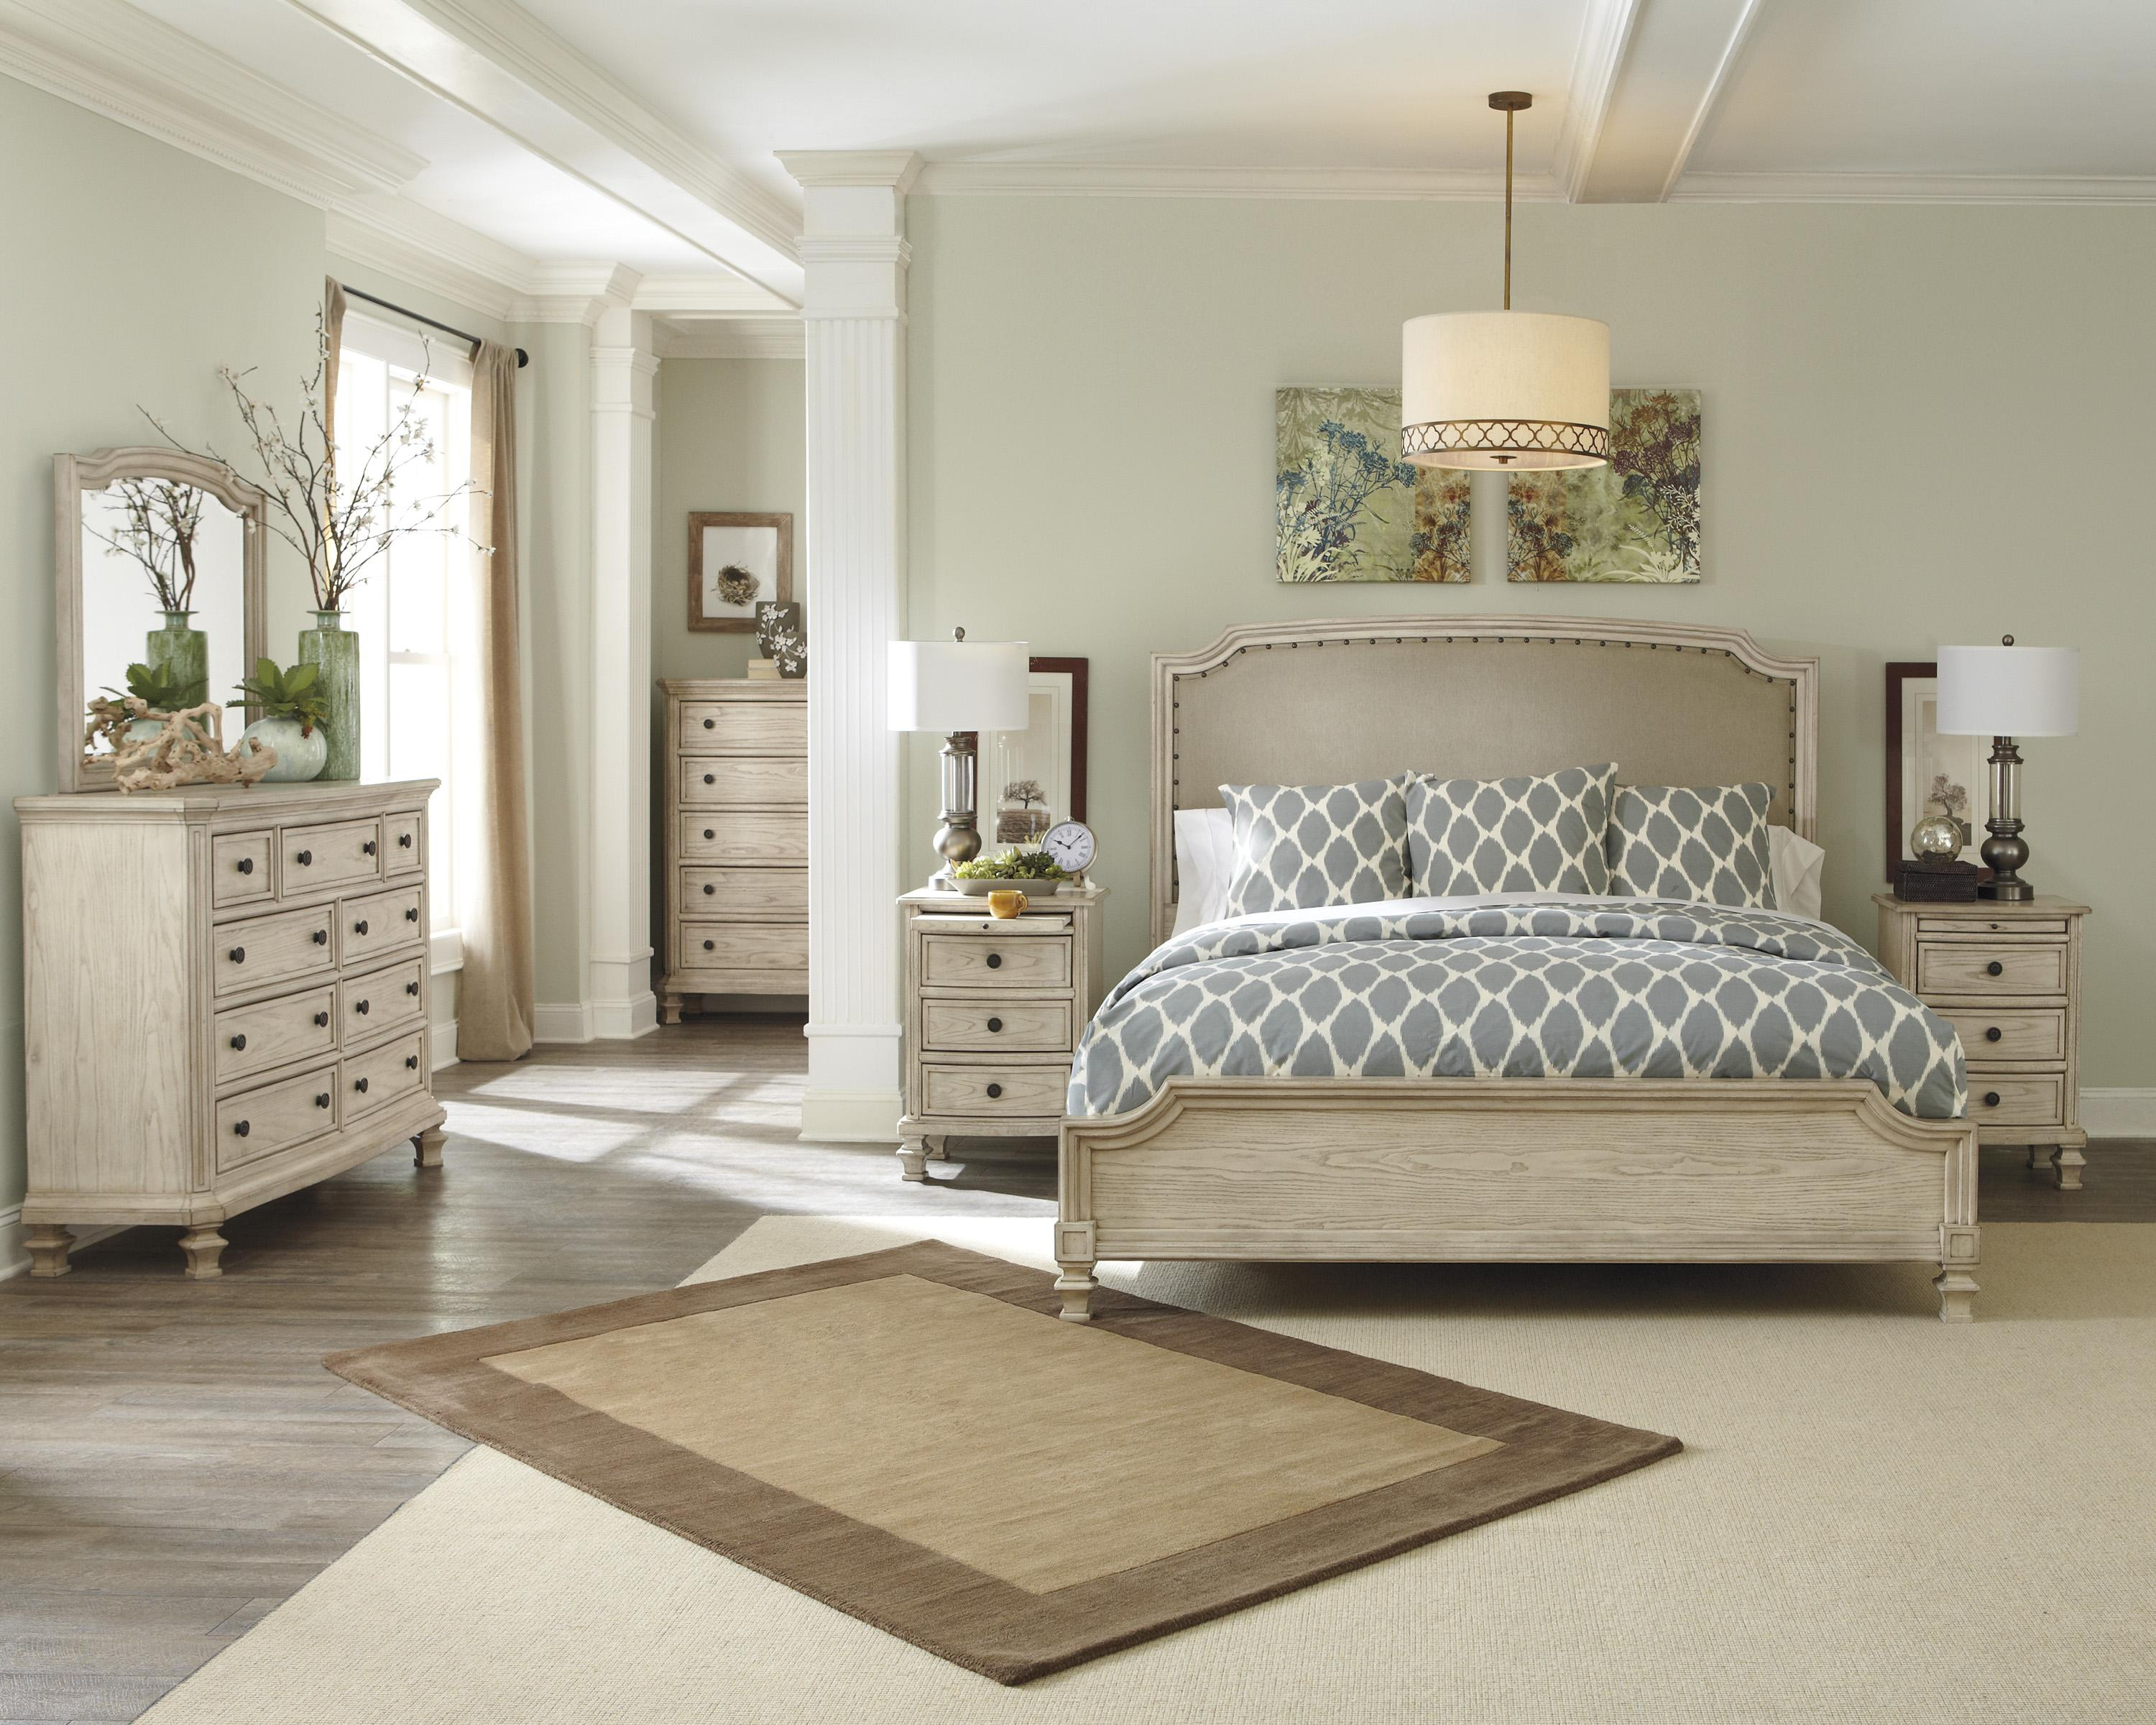 Signature Design by Ashley Demarlos King Bedroom Group - Item Number: B693 K Bedroom Group 2